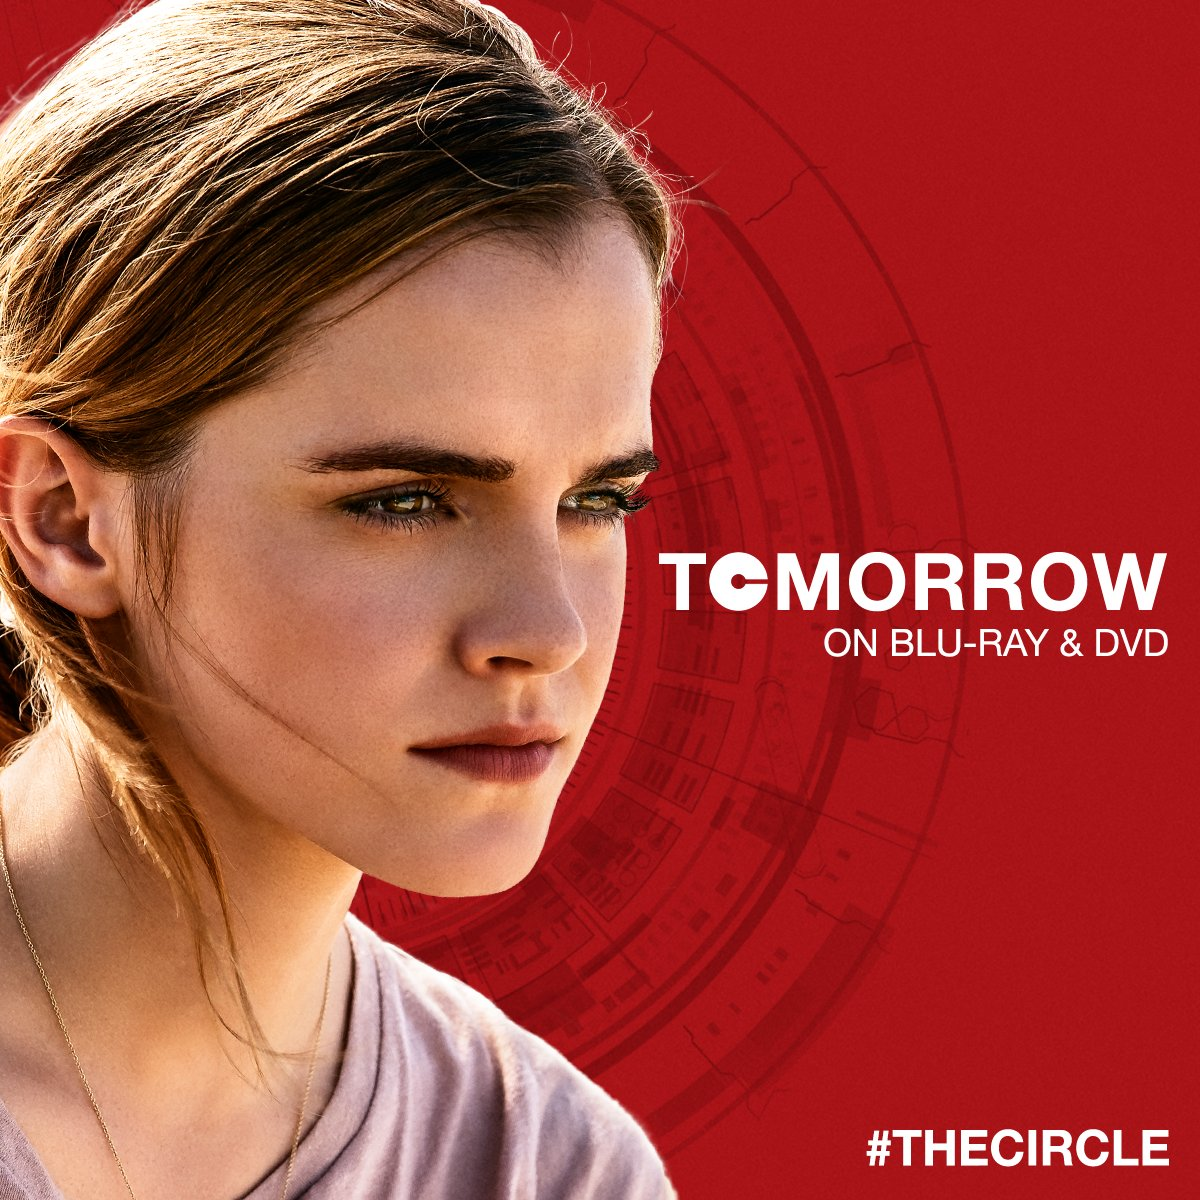 Discover the secrets behind #TheCircle. On Blu-ray & DVD TOMORROW. bit.ly/2uRK8a2